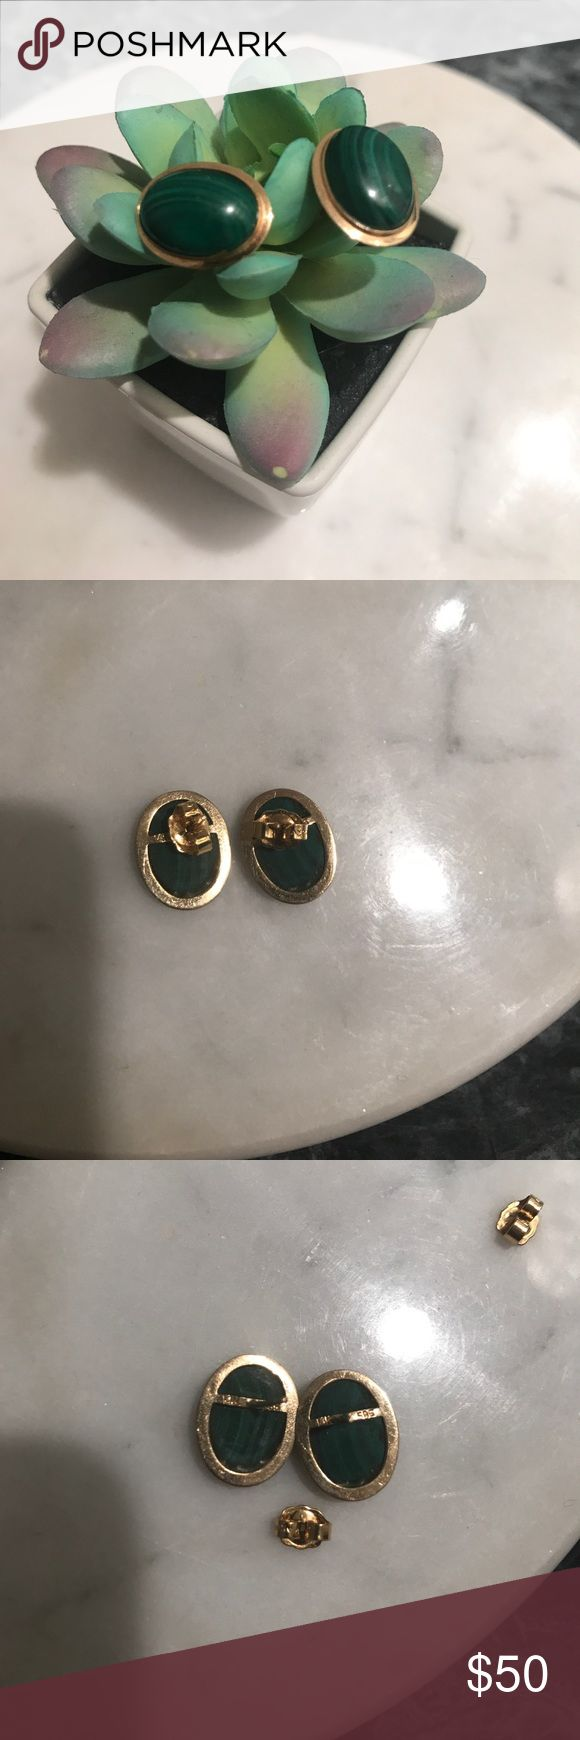 Vintage 14 karat gold earrings-Malachite stones  These are made by Avon, vintage 14 karat gold frame, stamped 585 14 K. I tried to capture in the photo but it was kind of hard getting that close. The green stone is genuine Malachite. Oval shape, stud post earrings. * Natural Stone * green * gold * antique * vintage * Avon Jewelry Earrings